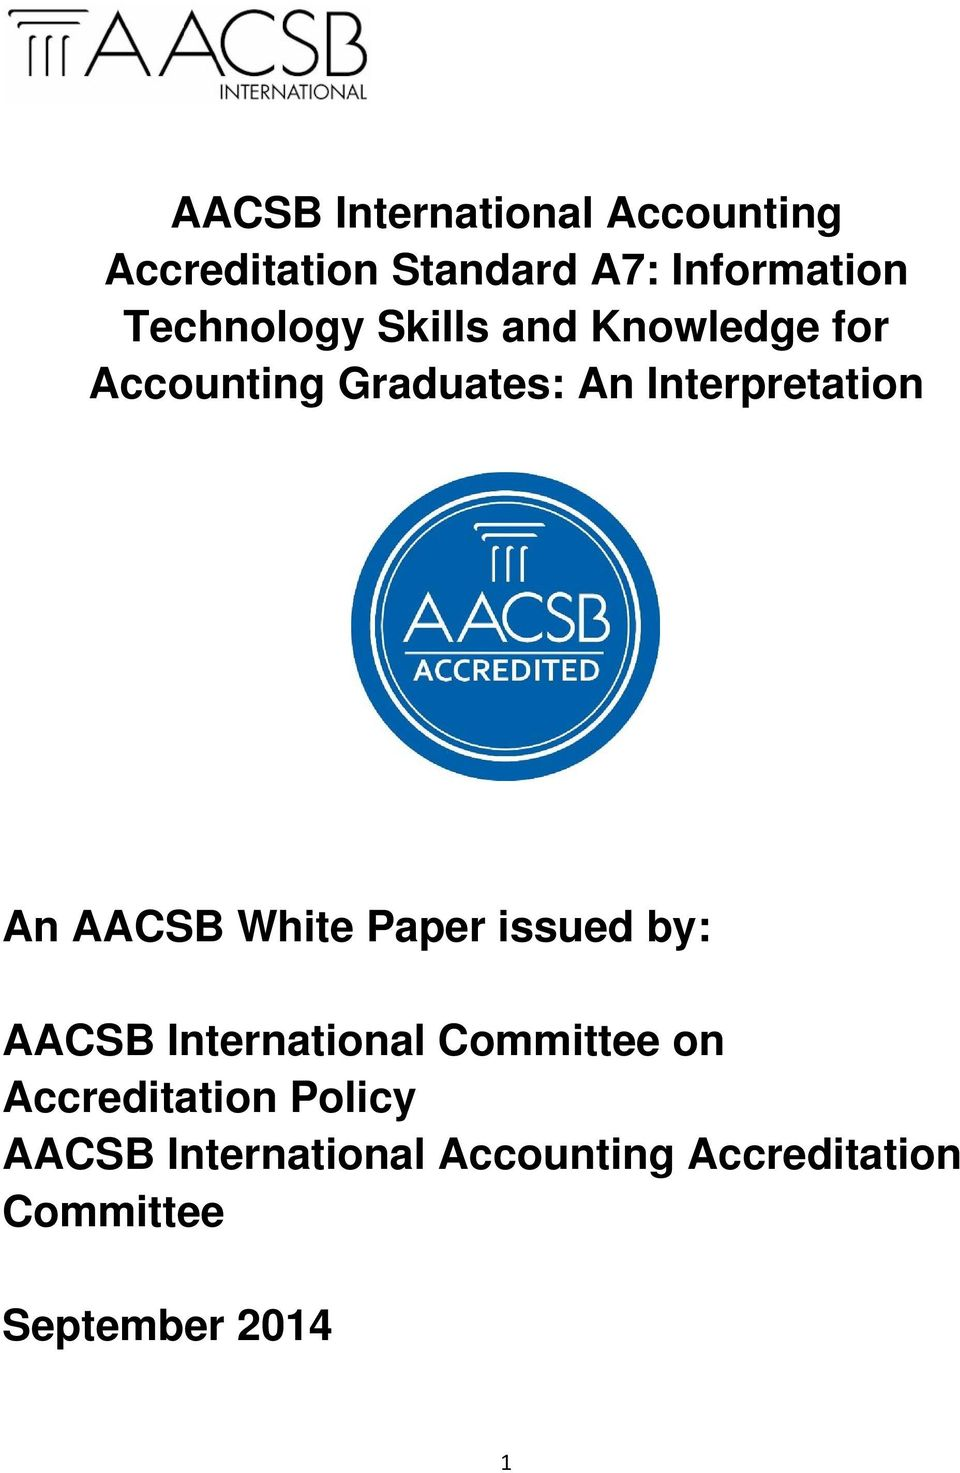 An AACSB White Paper issued by: AACSB International Committee on